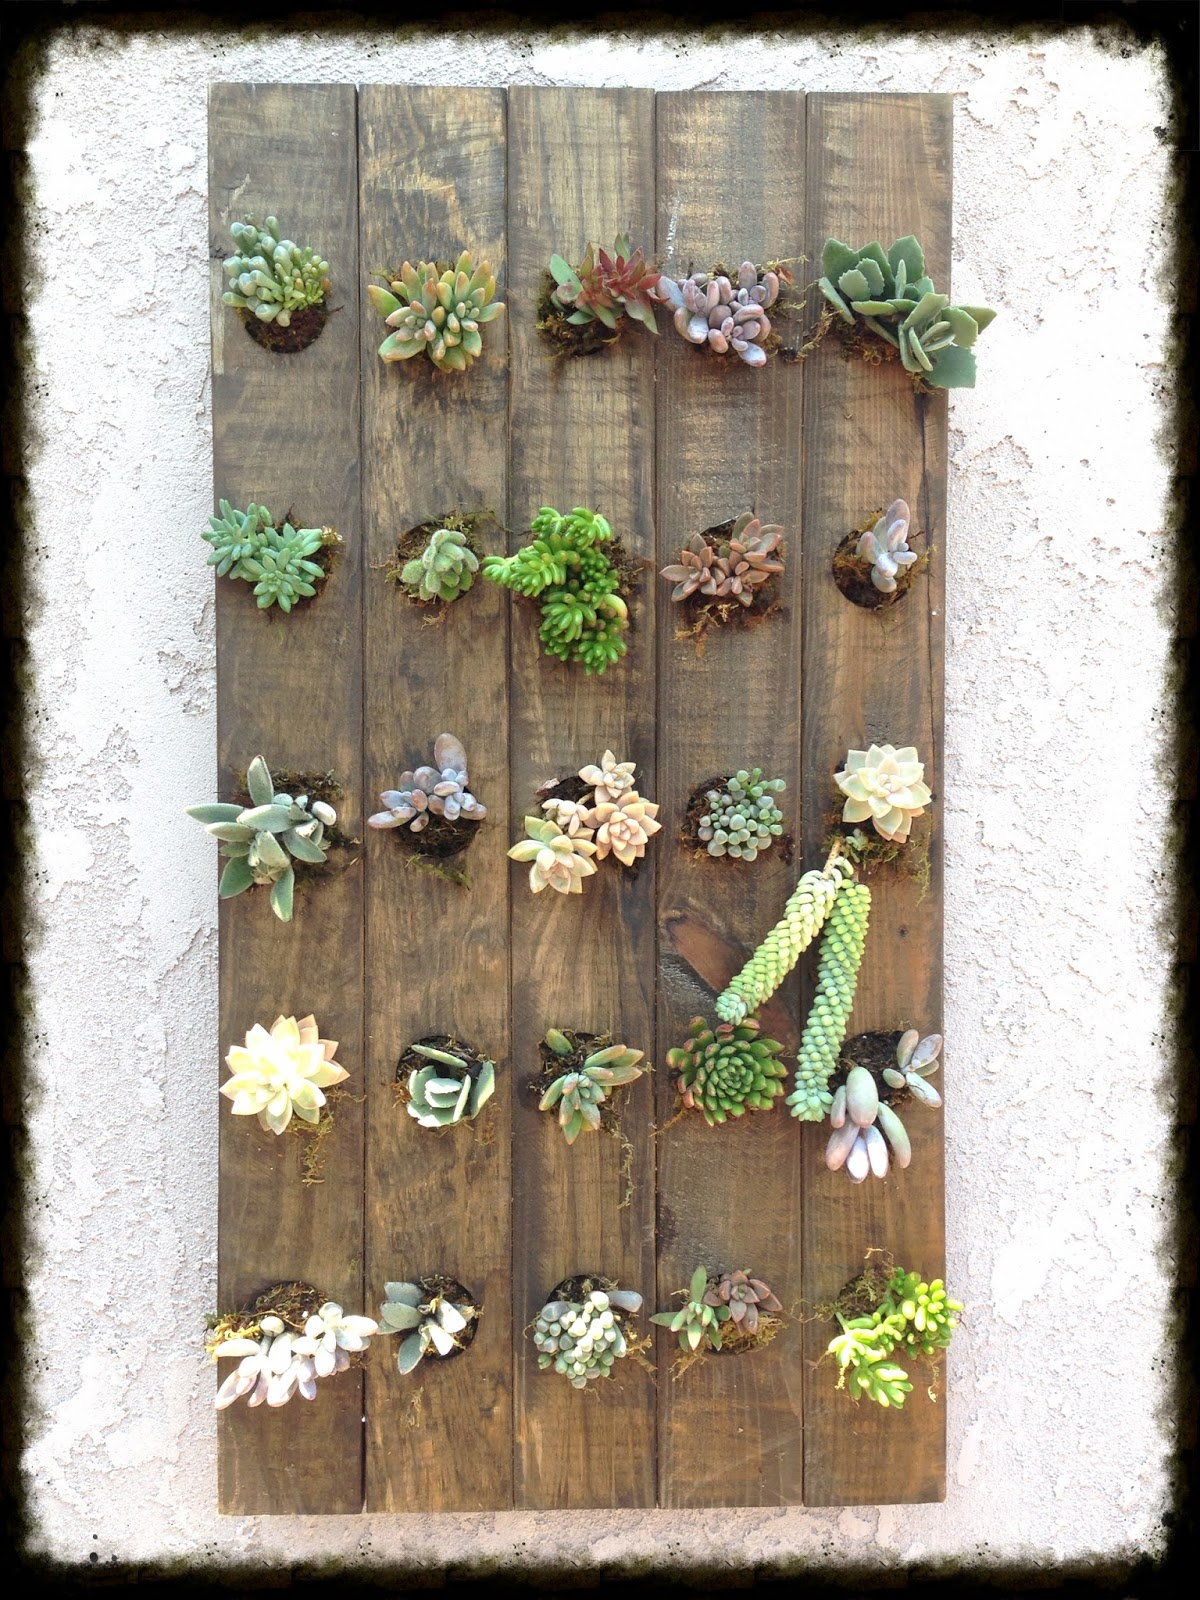 Hanging Wall Garden Diy : Garden and bliss diy succulent vertical